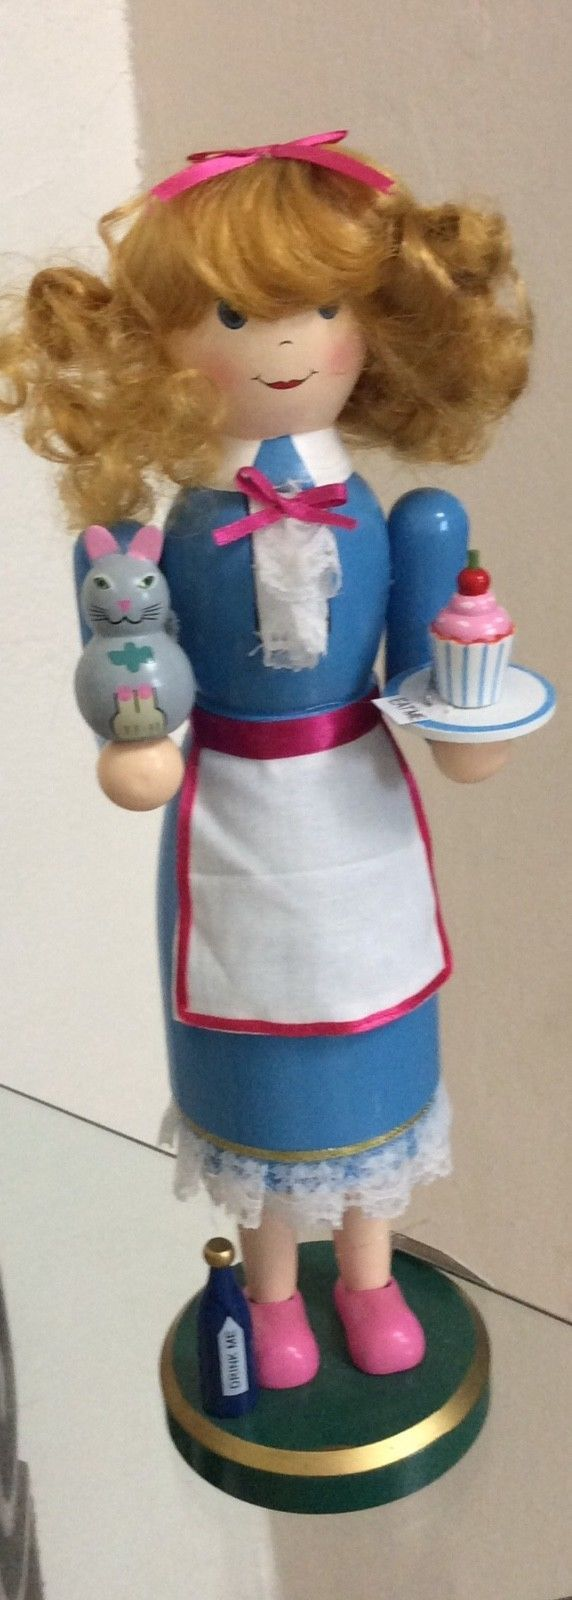 Primary image for Alice in Wonderland, Wooden Nutcracker, Holiday Lane. Measures 14 in Tall x 4 W.